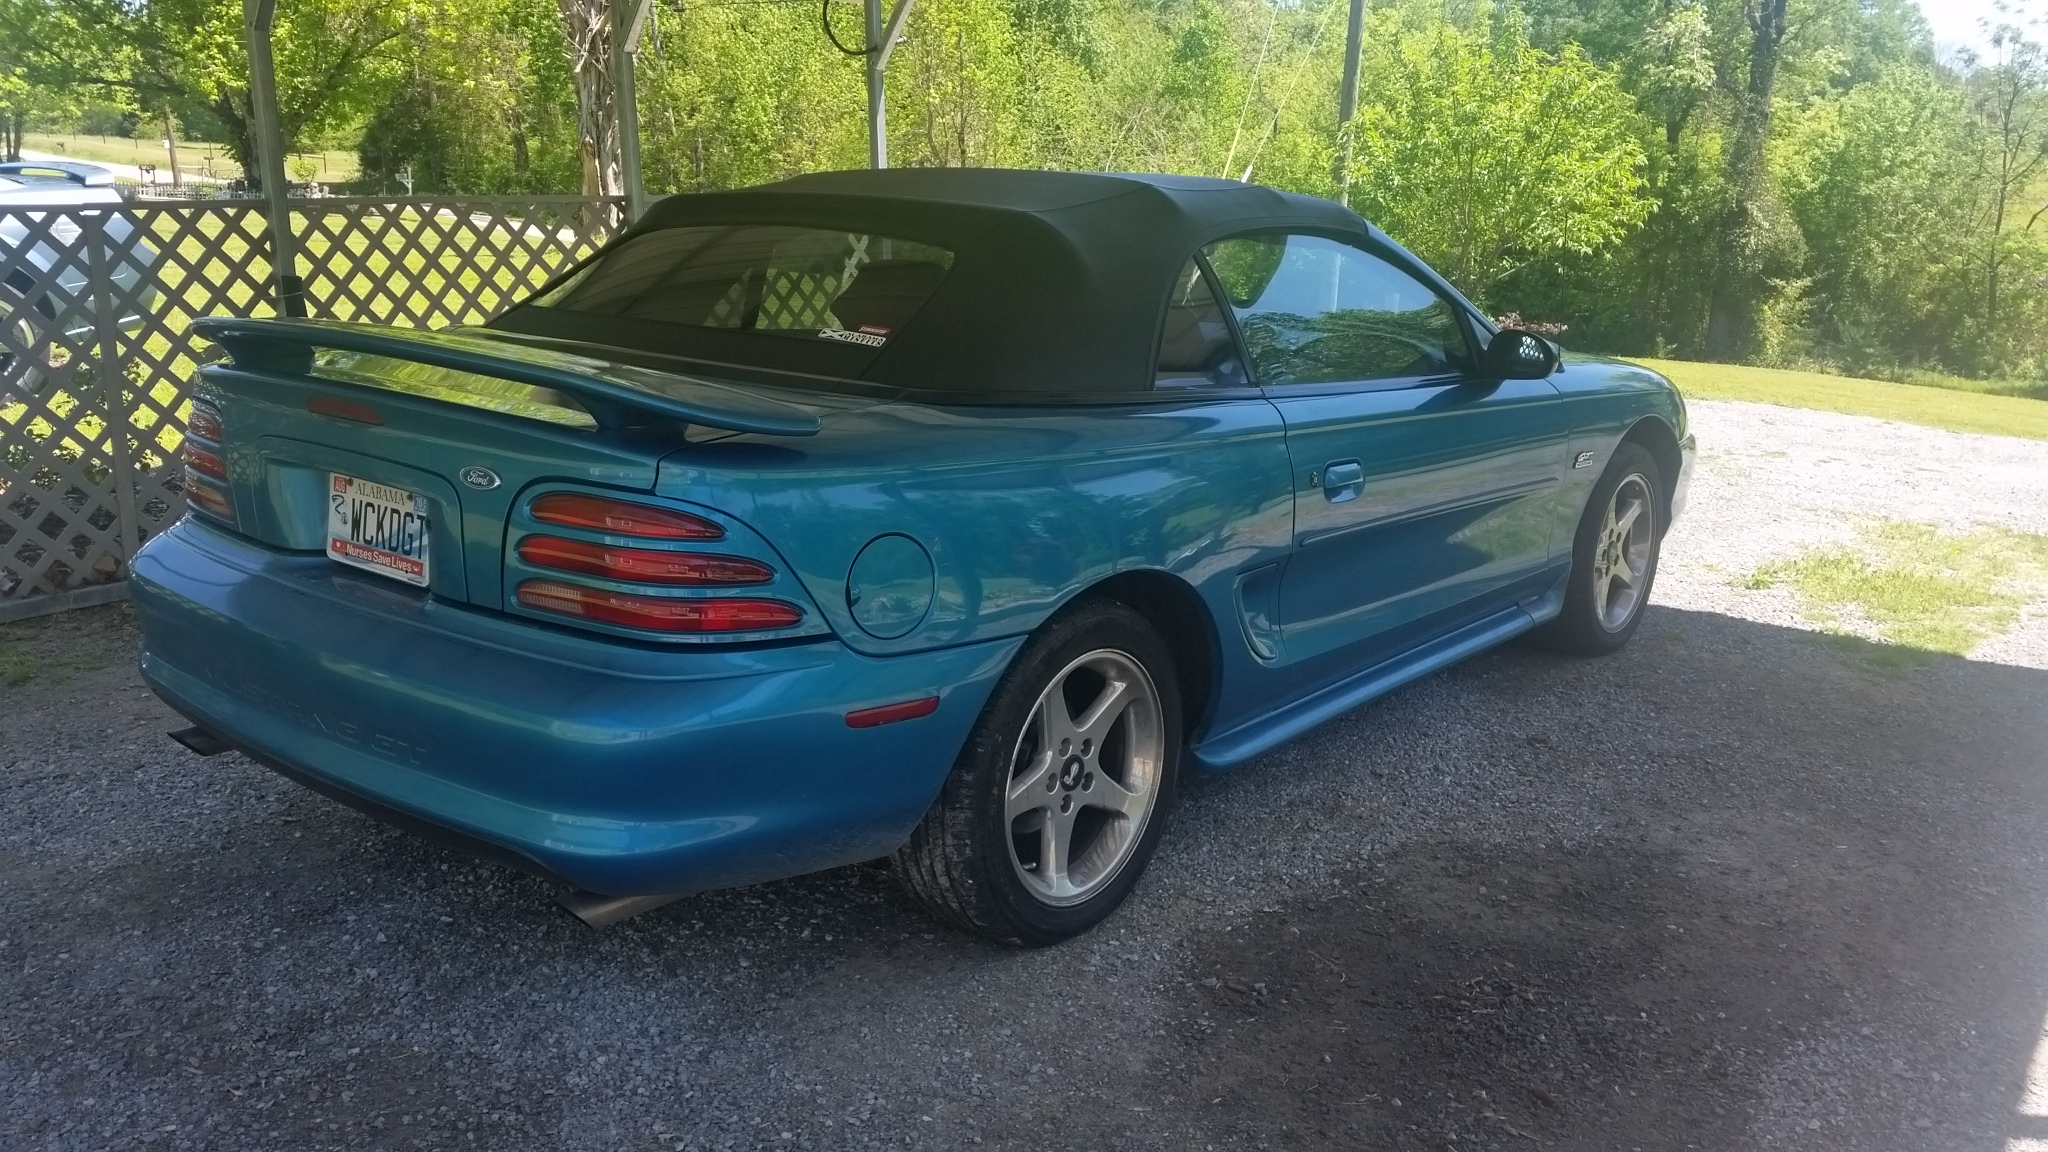 Converting the convertible